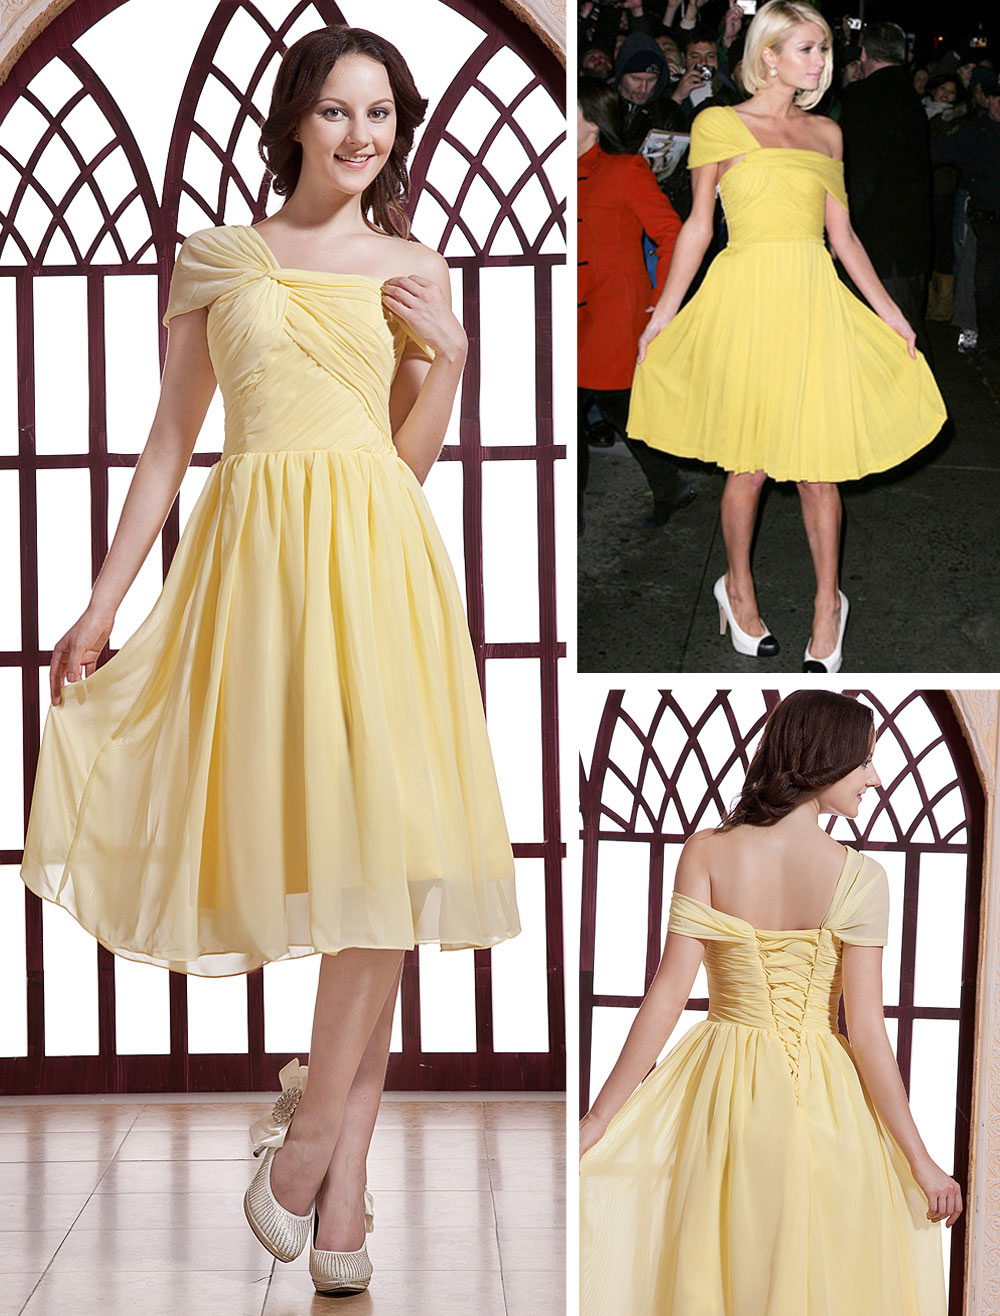 25818323b1 Chiffon Celebrity Yellow Dress Paris Hilton Daffodil Satin One Shoulder  Bridesmaid Dress - Milanoo.com